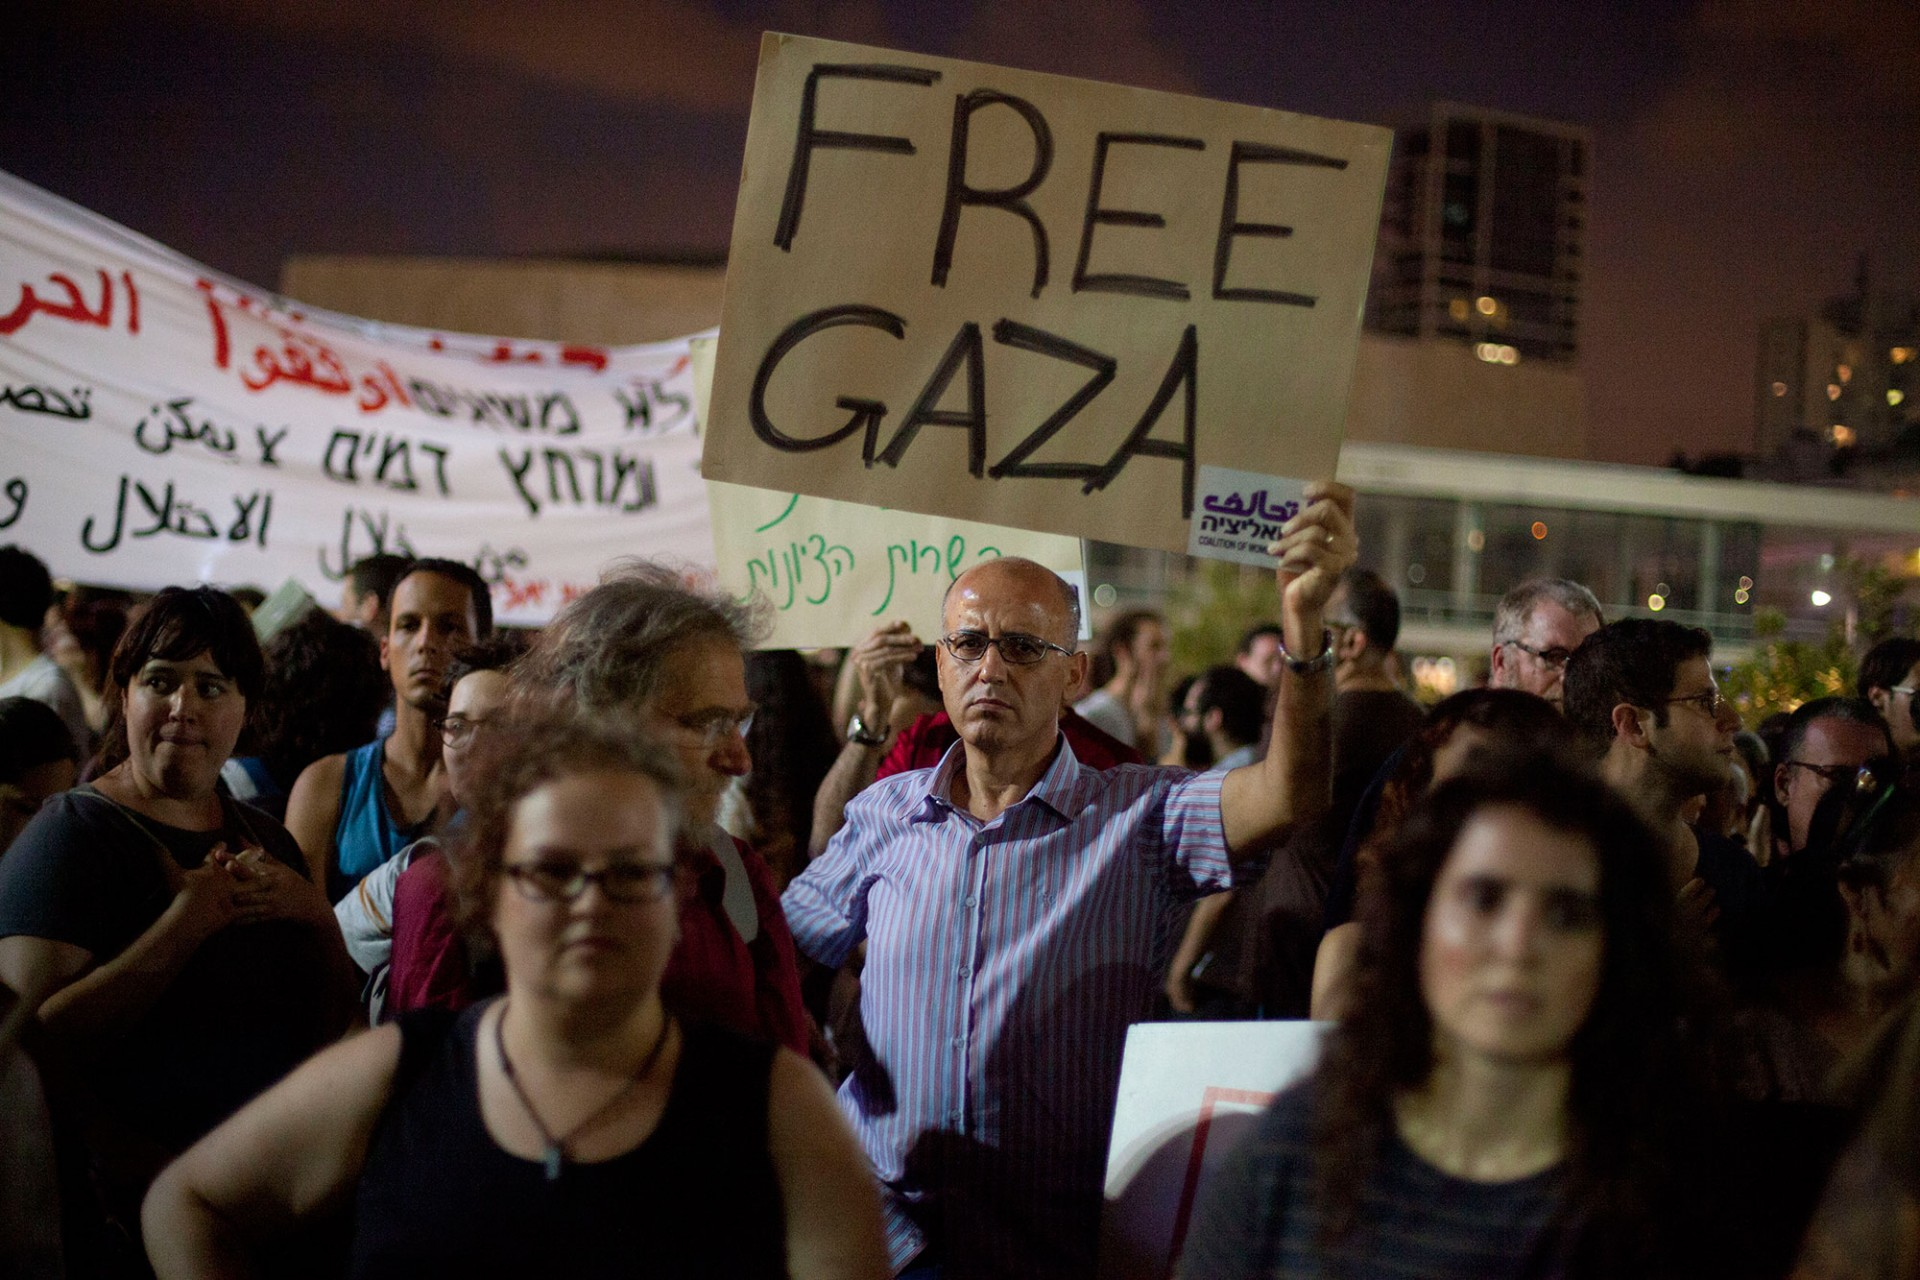 Israelis take part in a protest against Israel's military operation in the Gaza Strip on July 19, 2014 in Tel Aviv, Israel.